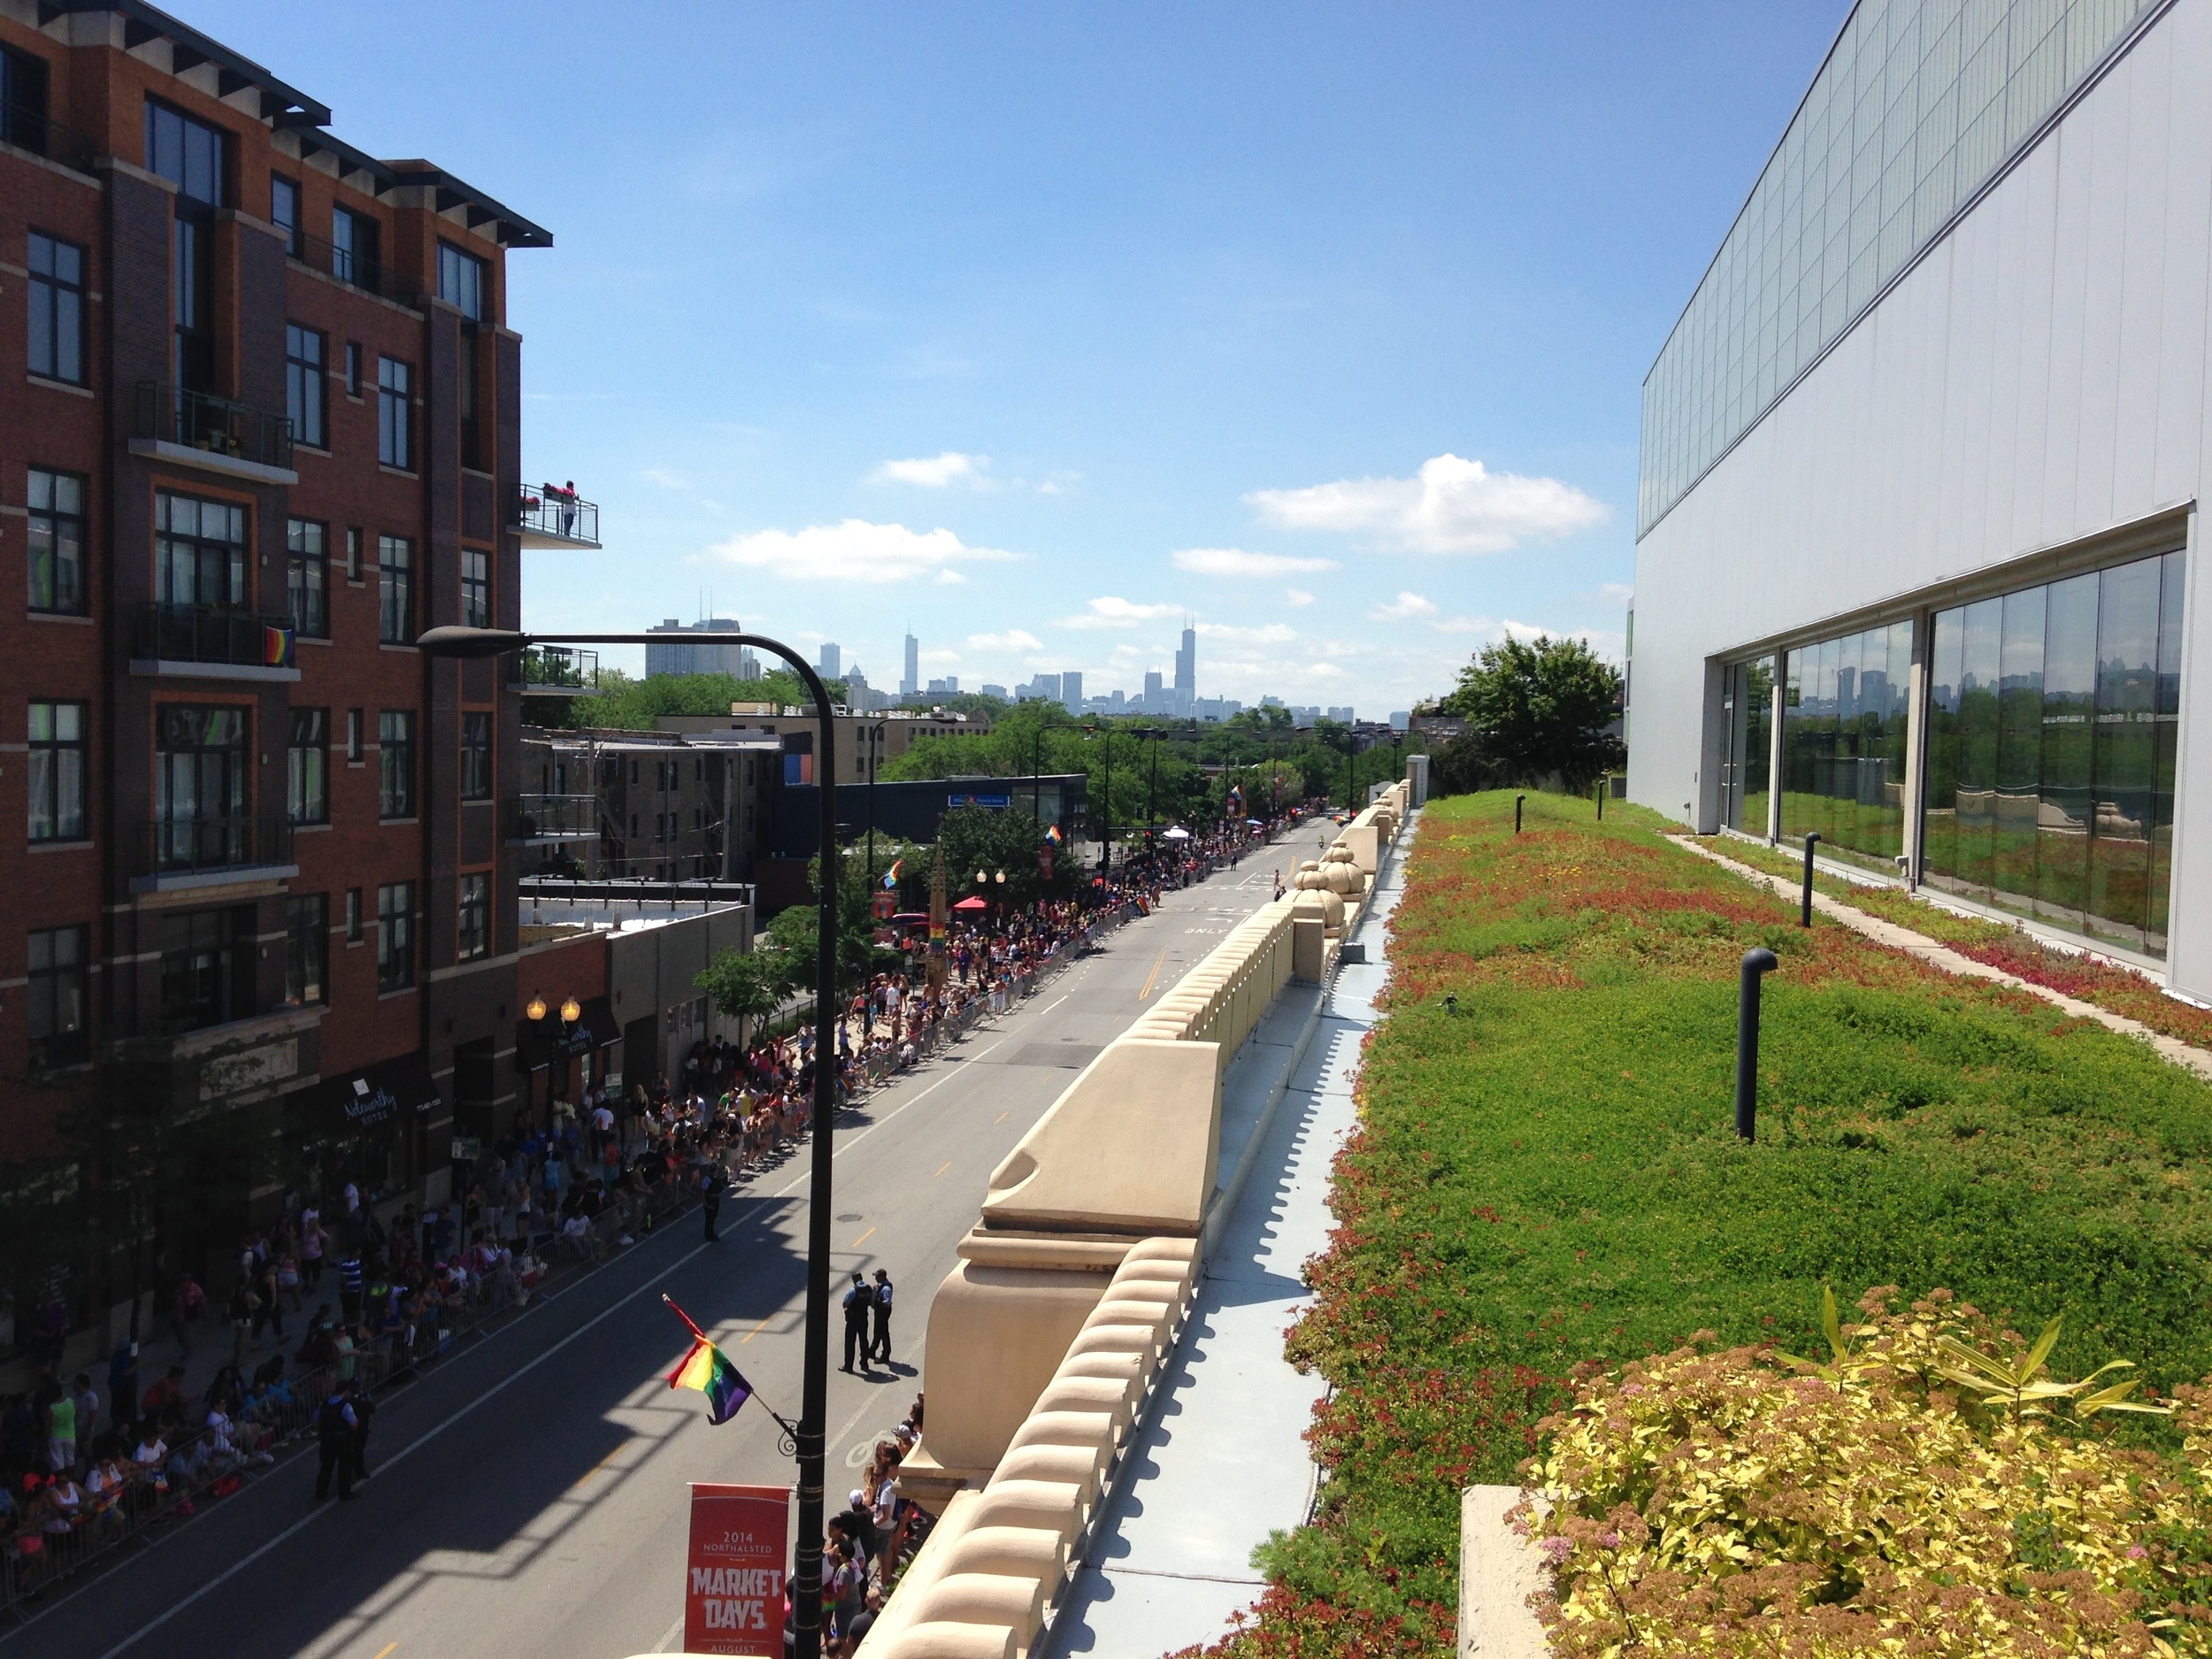 Rooftop Garden and balcony, perfect for watching the life on the street and neighborhood events.  Below:Viewing the Pride Parade from the roof deck.